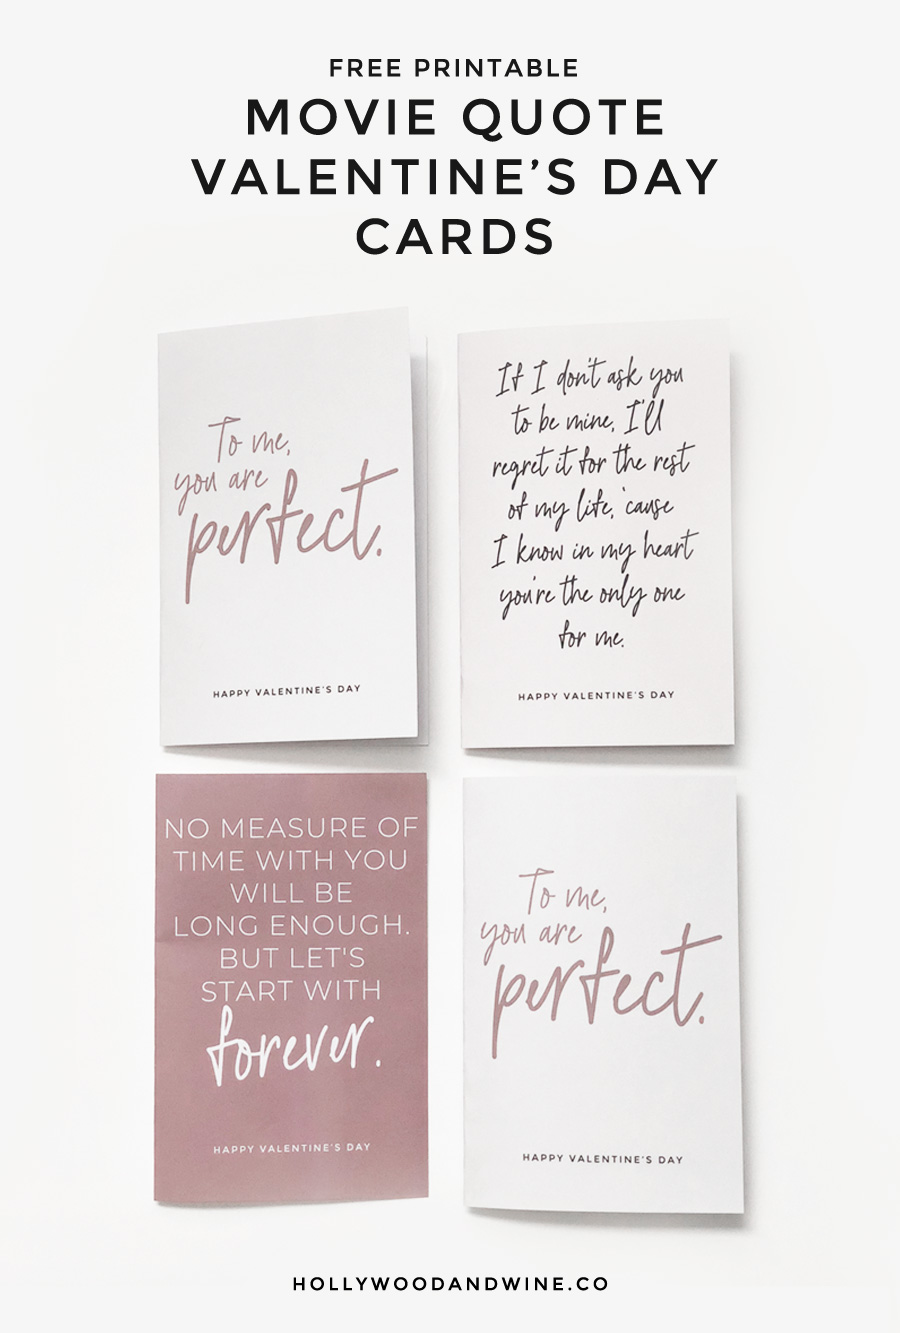 Free movie quote Valentine's Day cards